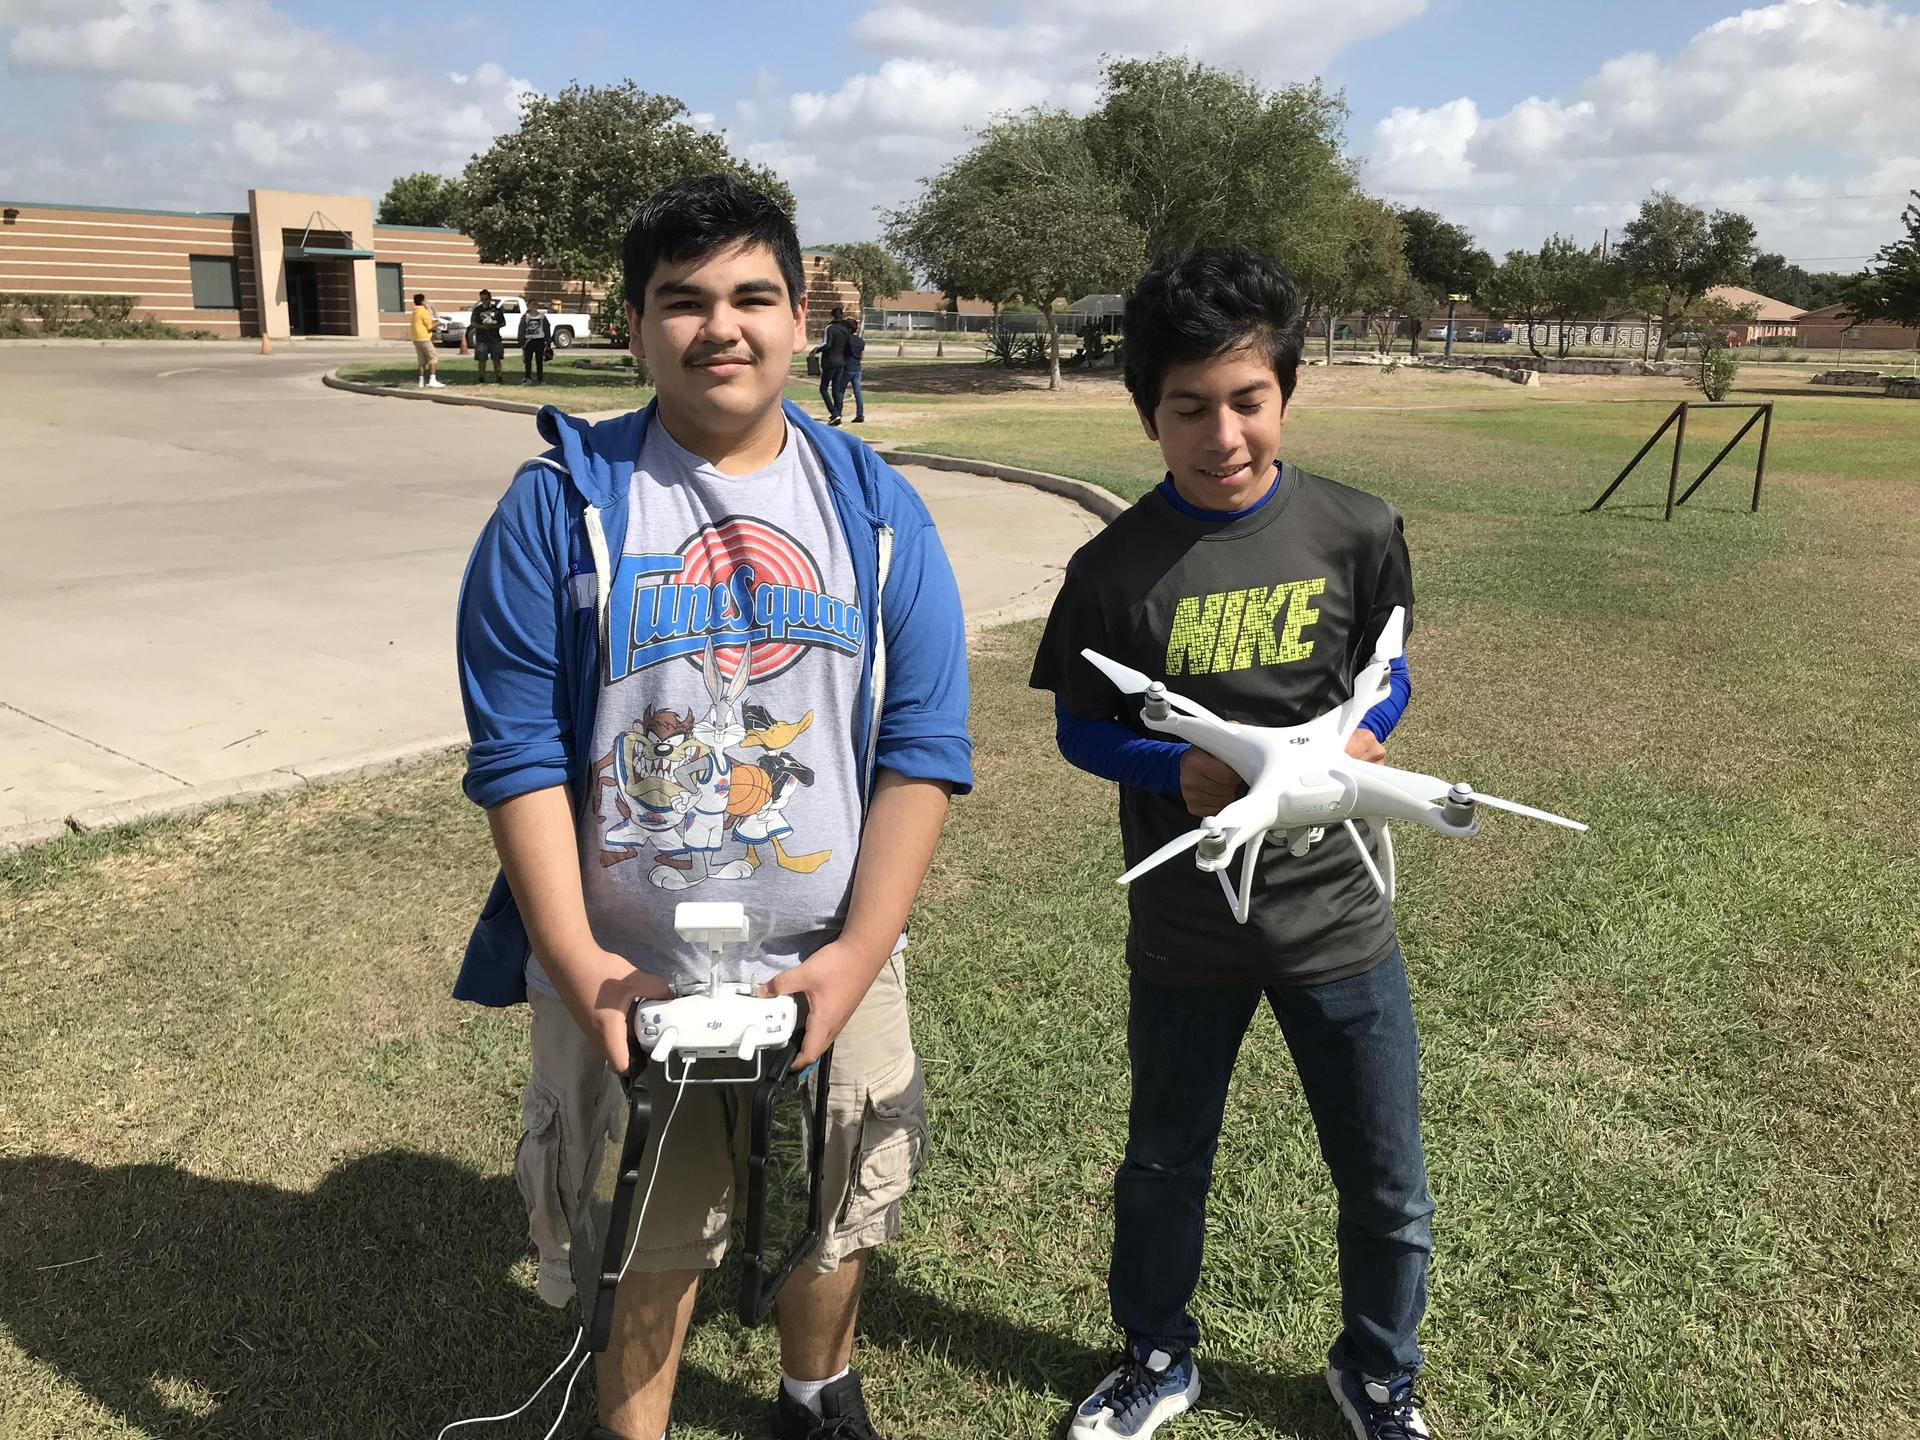 Students standing outside holding a drone